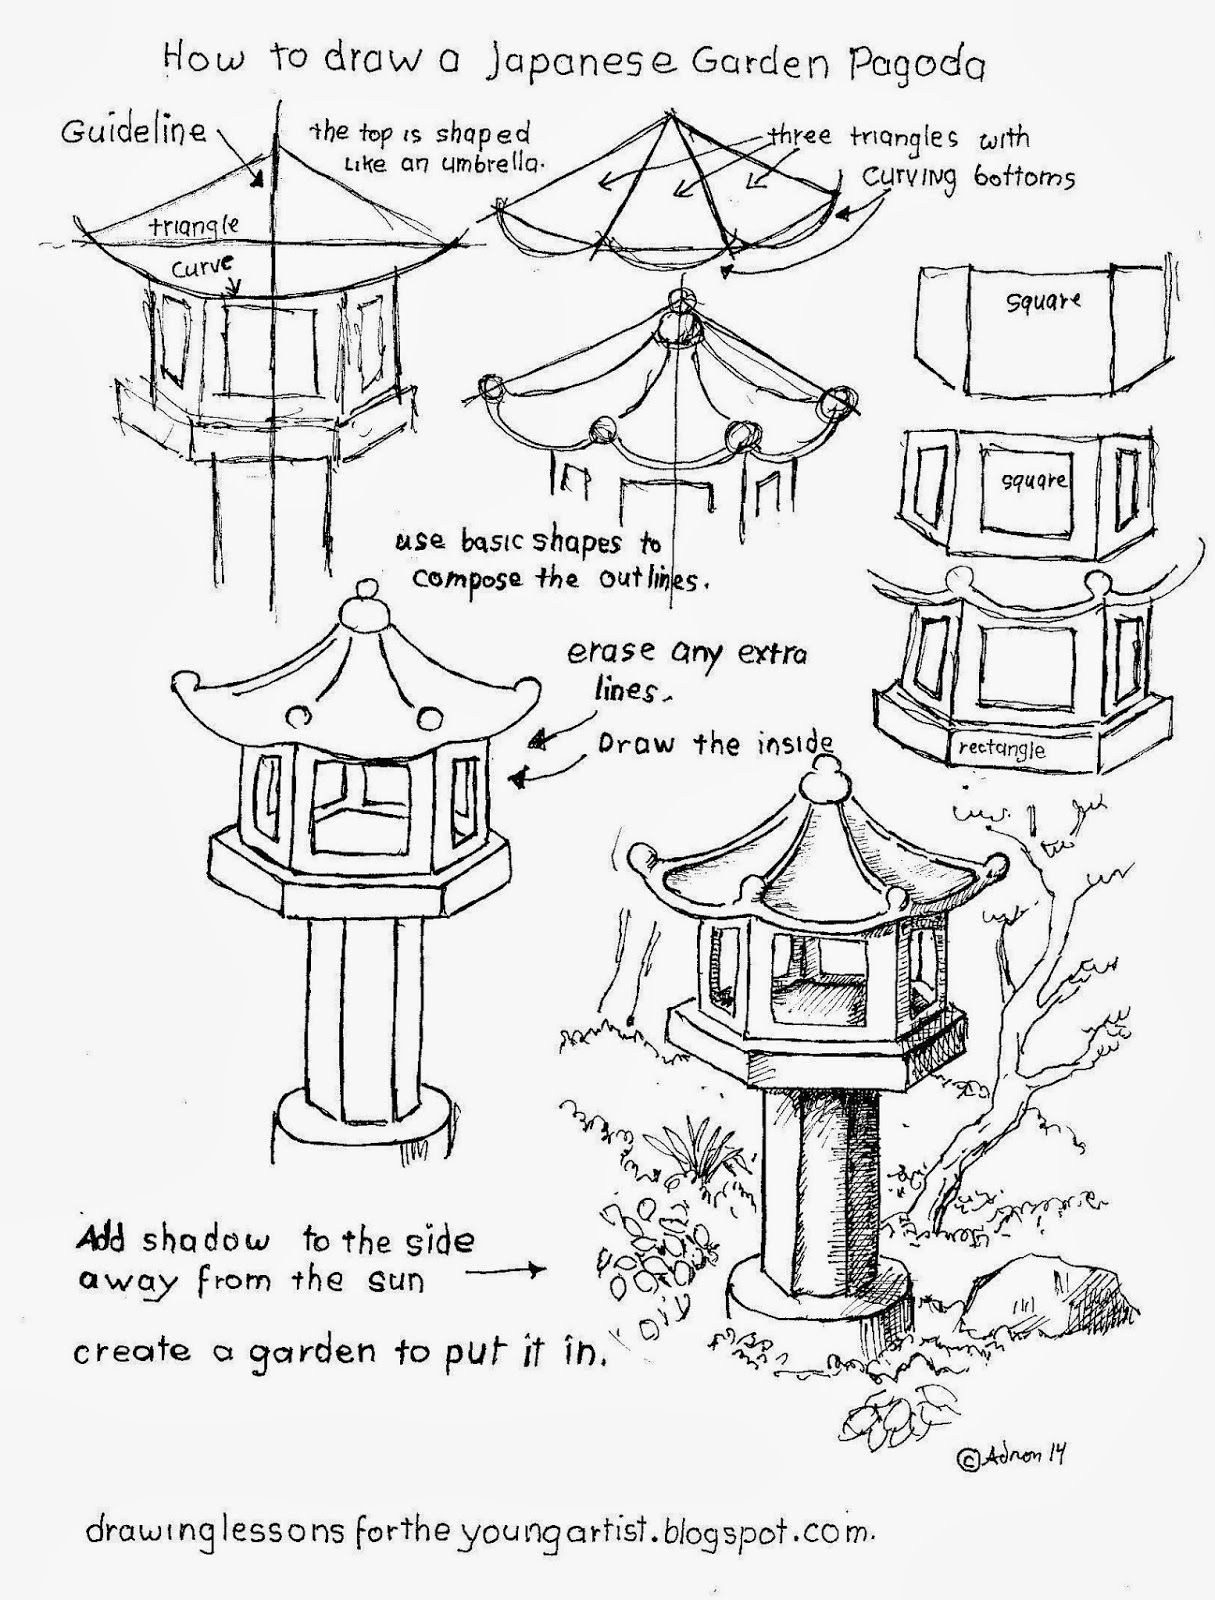 Uncategorized Japanese Worksheets how to draw worksheets for the young artist a japanese garden pagoda